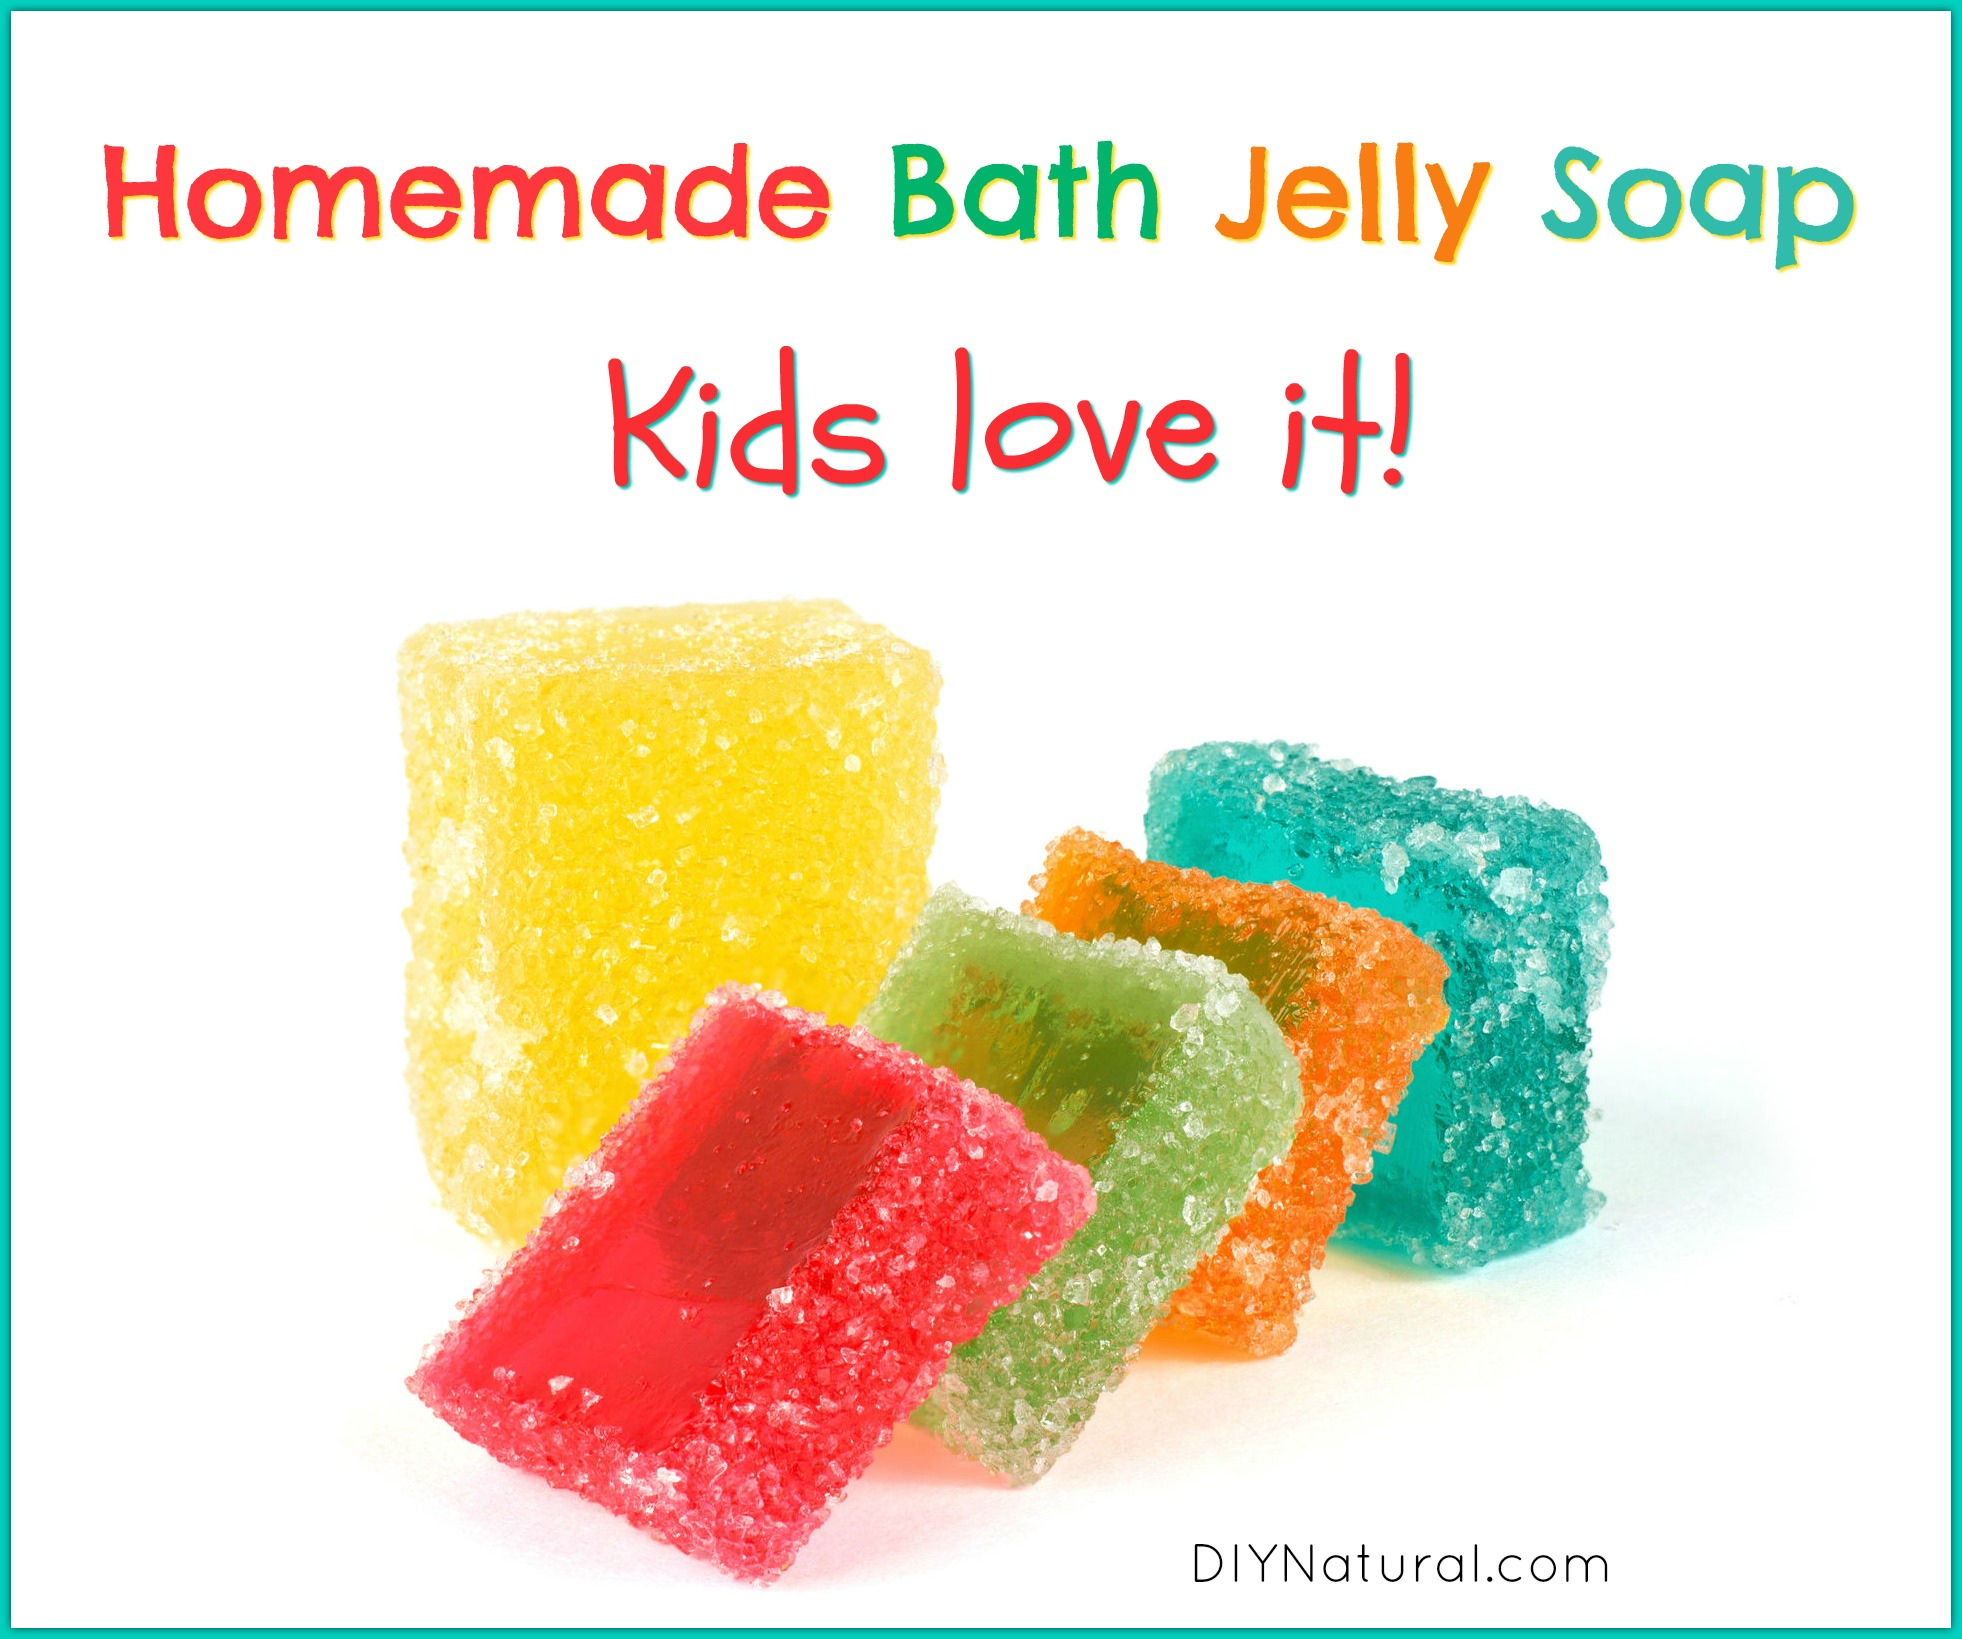 Jelly Soap: A DIY Recipe for Bath Jelly Soap that the Kids ...